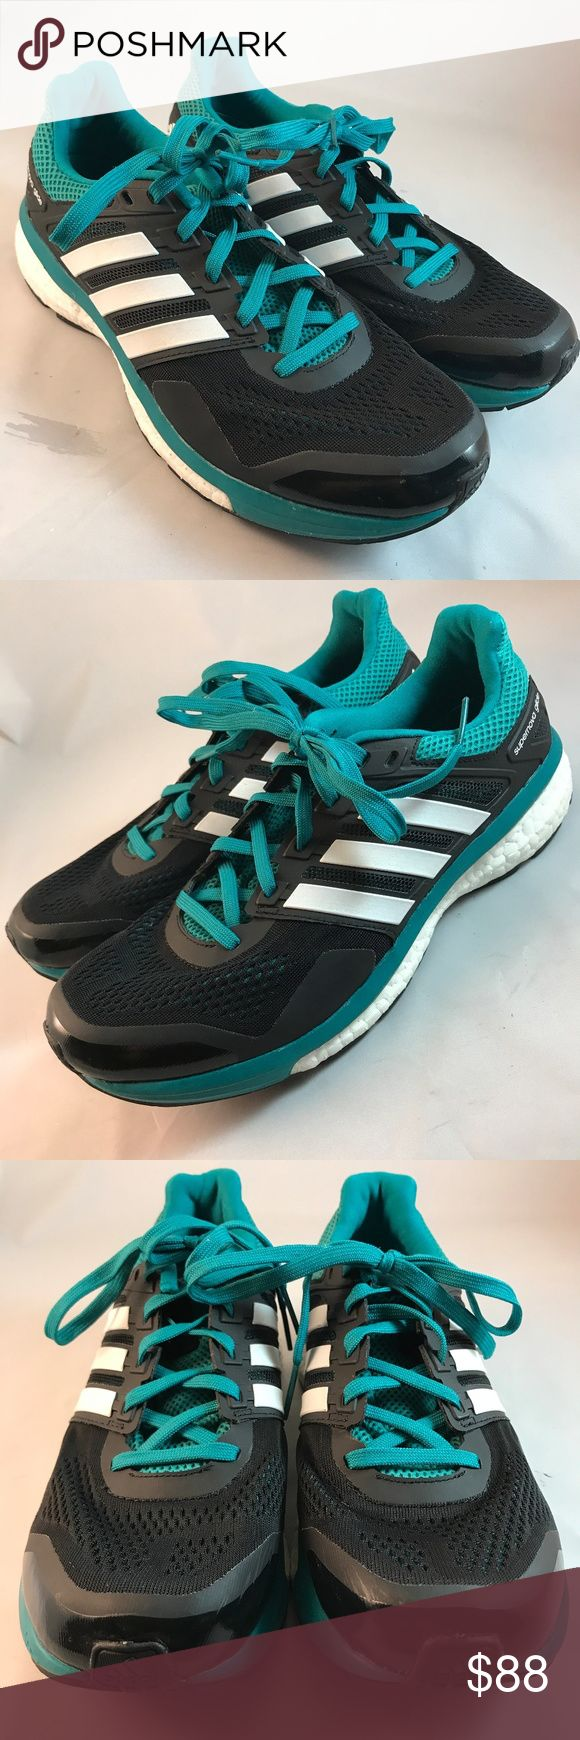 Mint Adidas Glide Boost Teal Black Mens 9.5 43 1/3 Mint Adidas Glide Boost Teal Black Mens 9.5 43 1/3. Worn a few times. No defects All original insoles and laces. Adidas Shoes Athletic Shoes